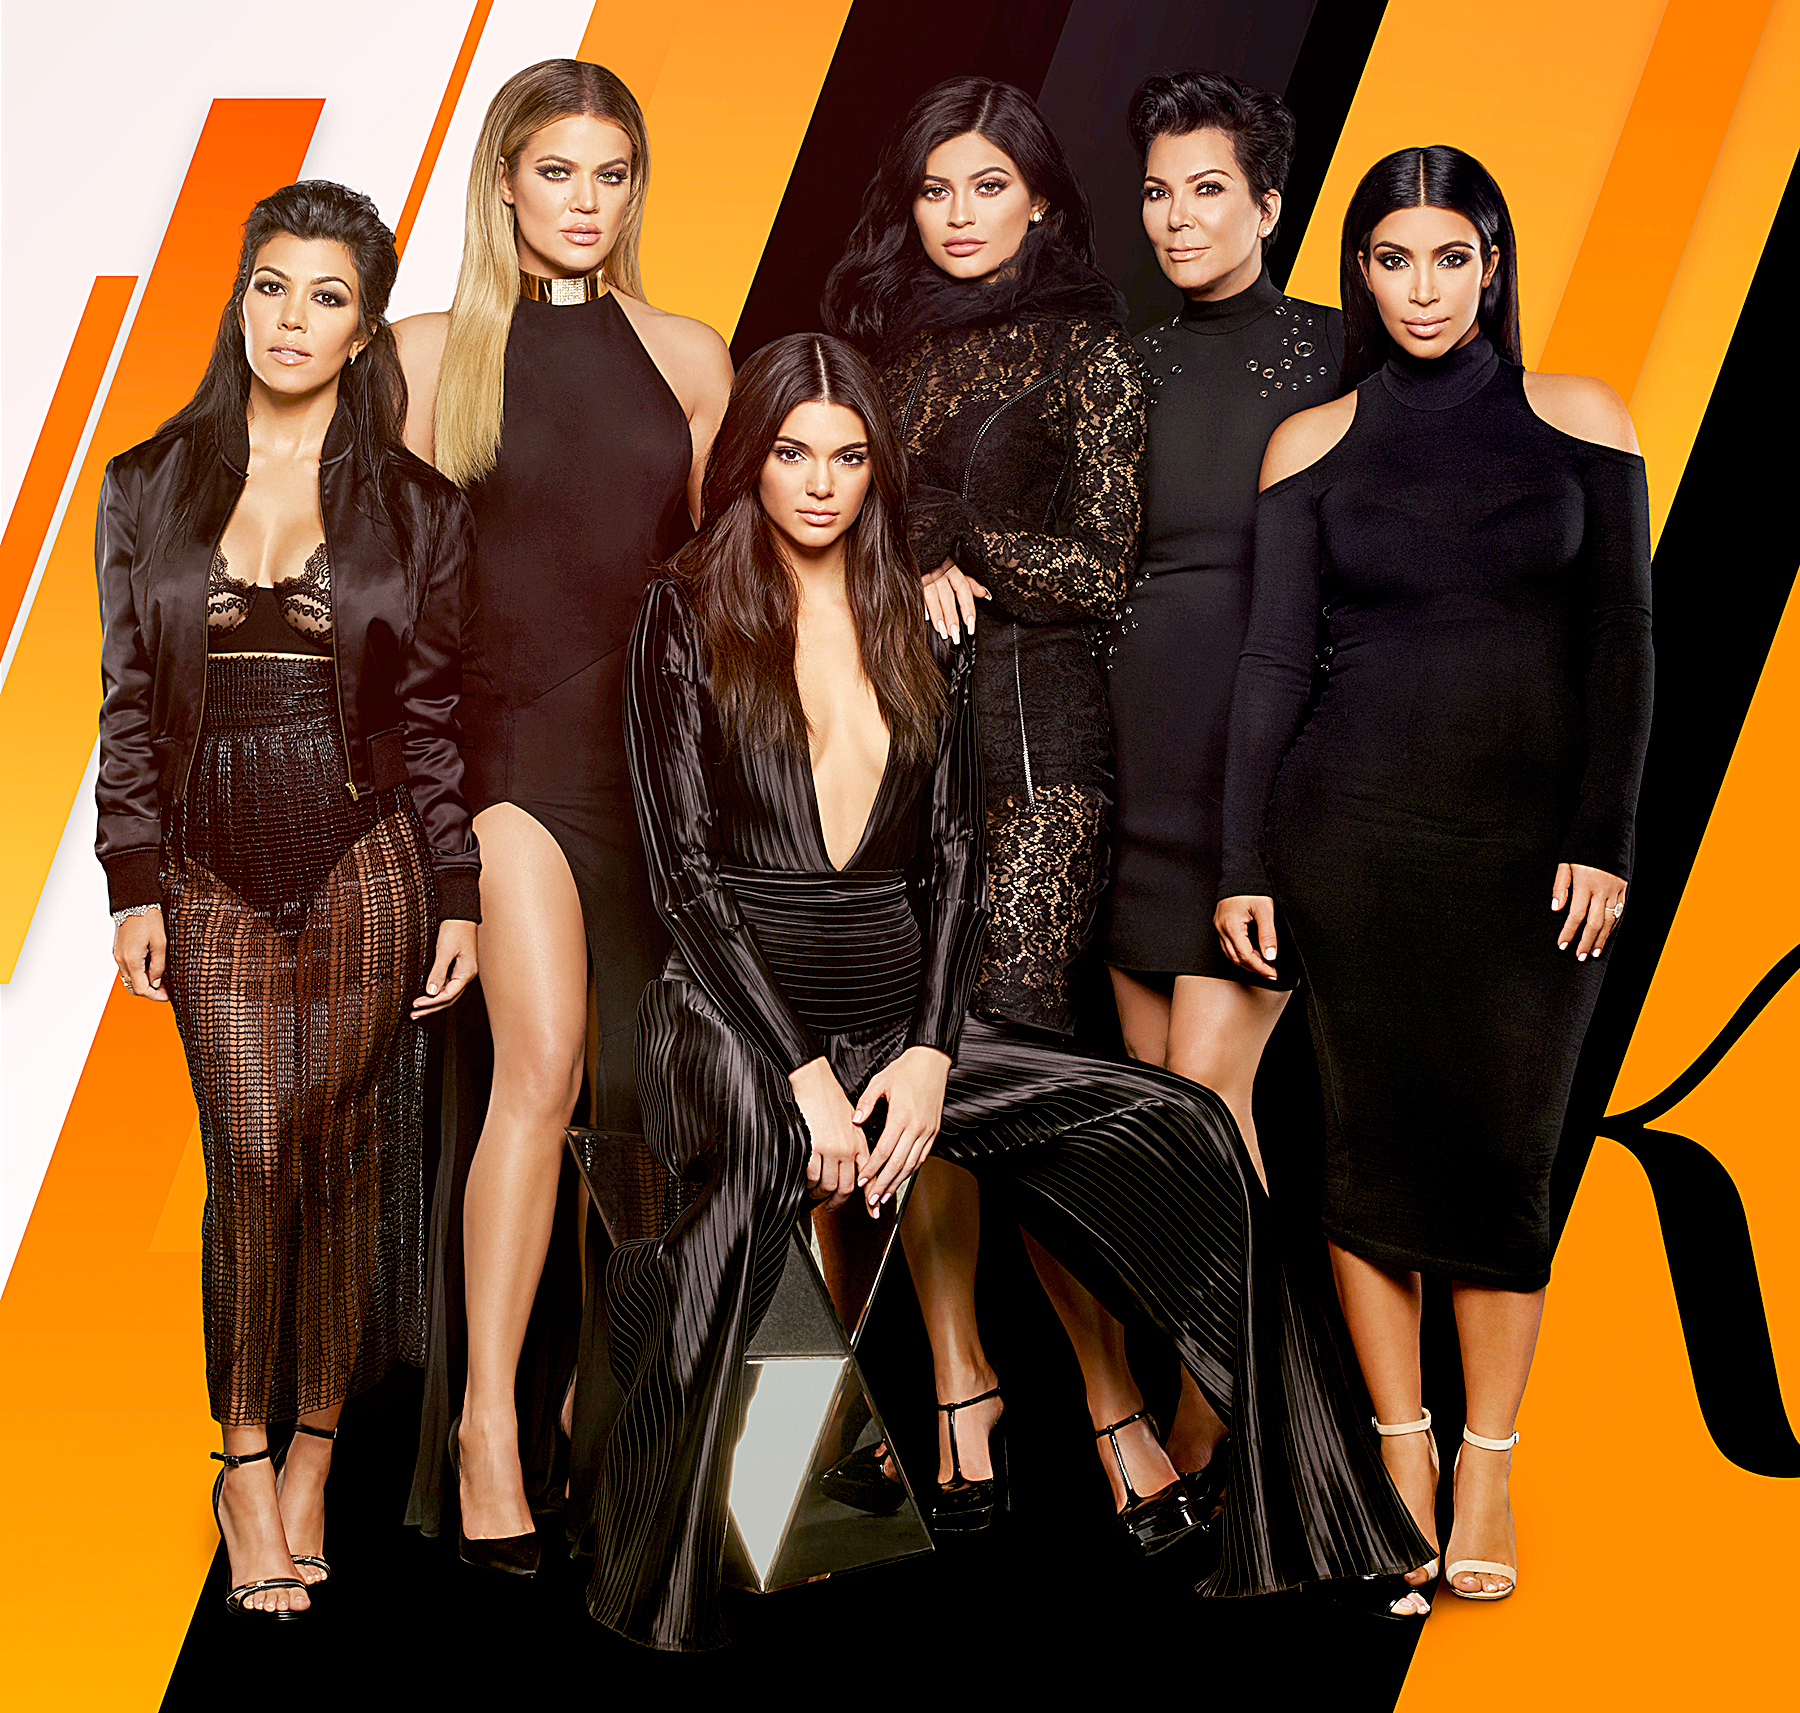 "Cheating-Scandal-Will-Be-Addressed-on-KUWTK - Multiple sources confirmed to Us that Thompson's cheating scandal will be addressed during season 15 of Keeping Up With the Kardashians. ""They always discuss real life things on the show. They've never ignored a topic,"" an insider close to Khloé told Us."